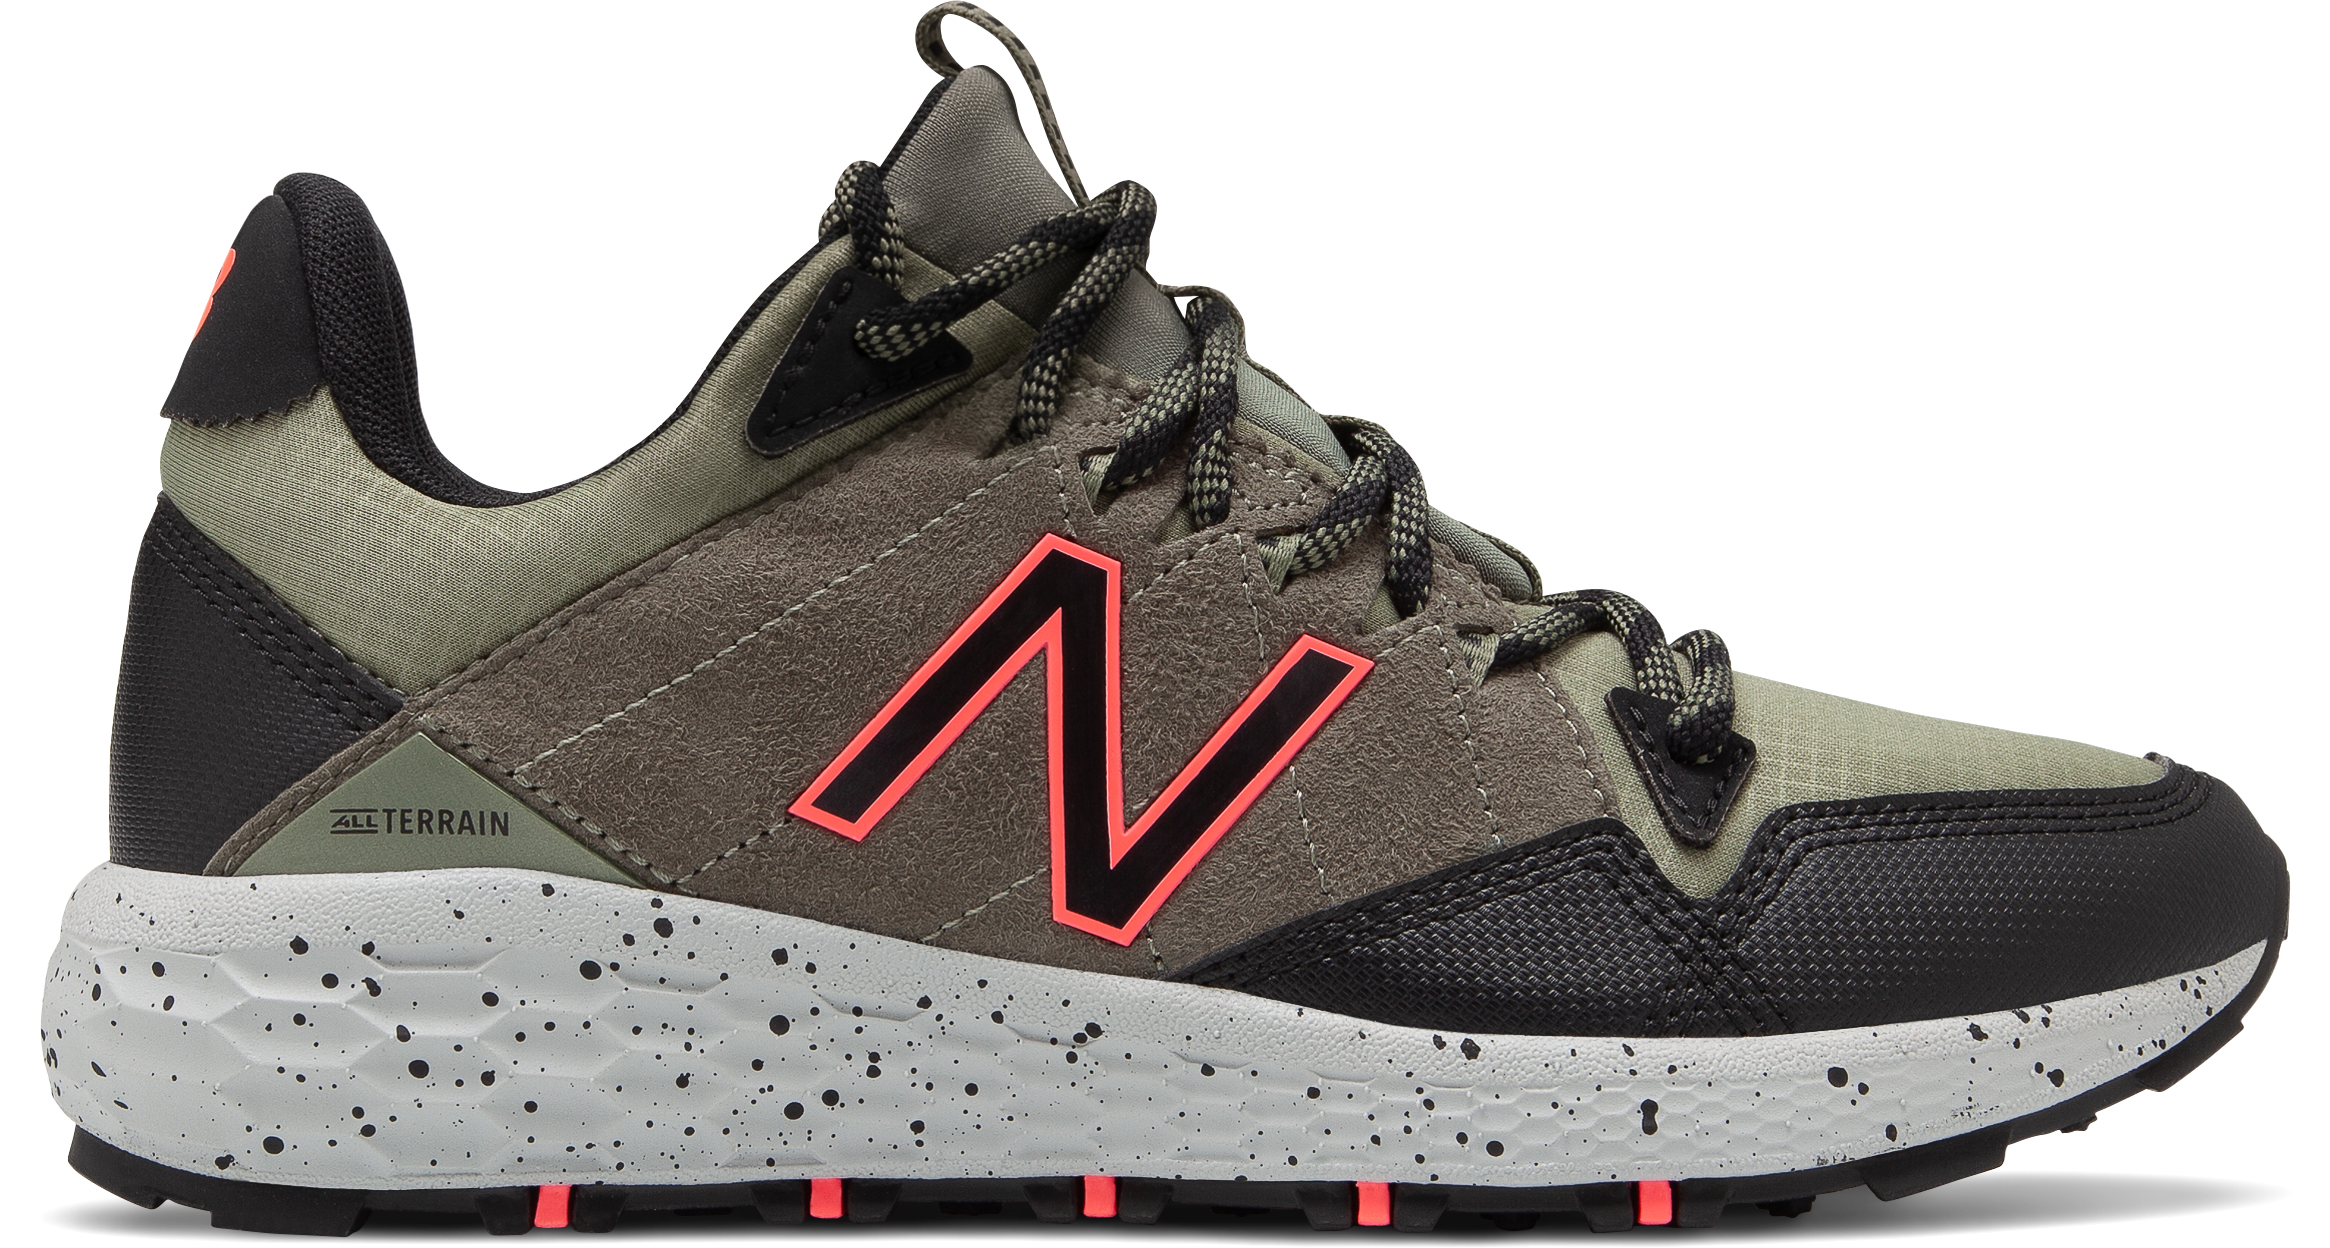 32a5d8a63ccfed New Balance Shoes for Trail running